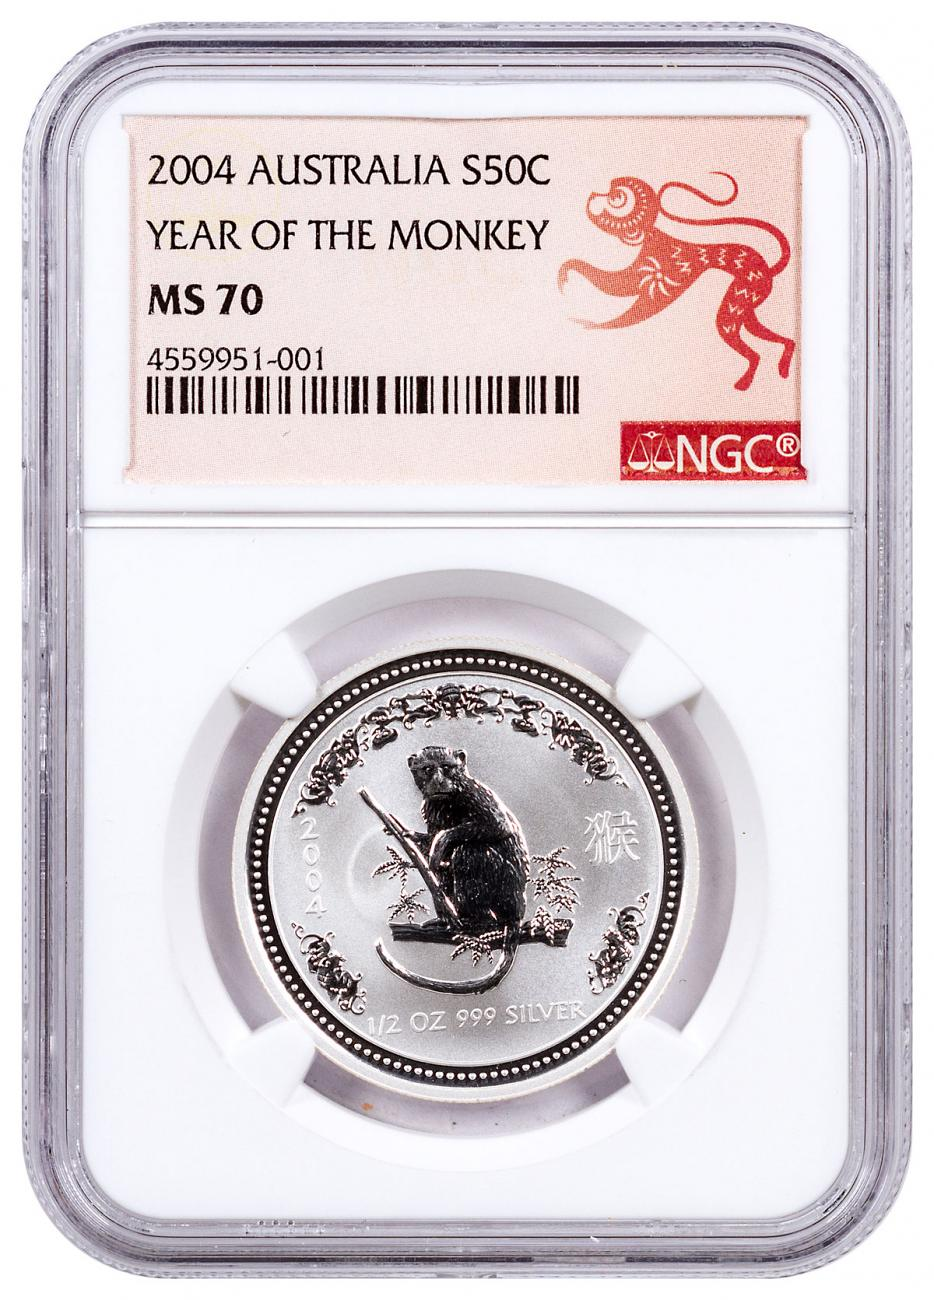 2004 Australia Year of the Monkey 1/2 oz Silver Lunar (Series 1) 50c Coin NGC MS70 Monkey Label